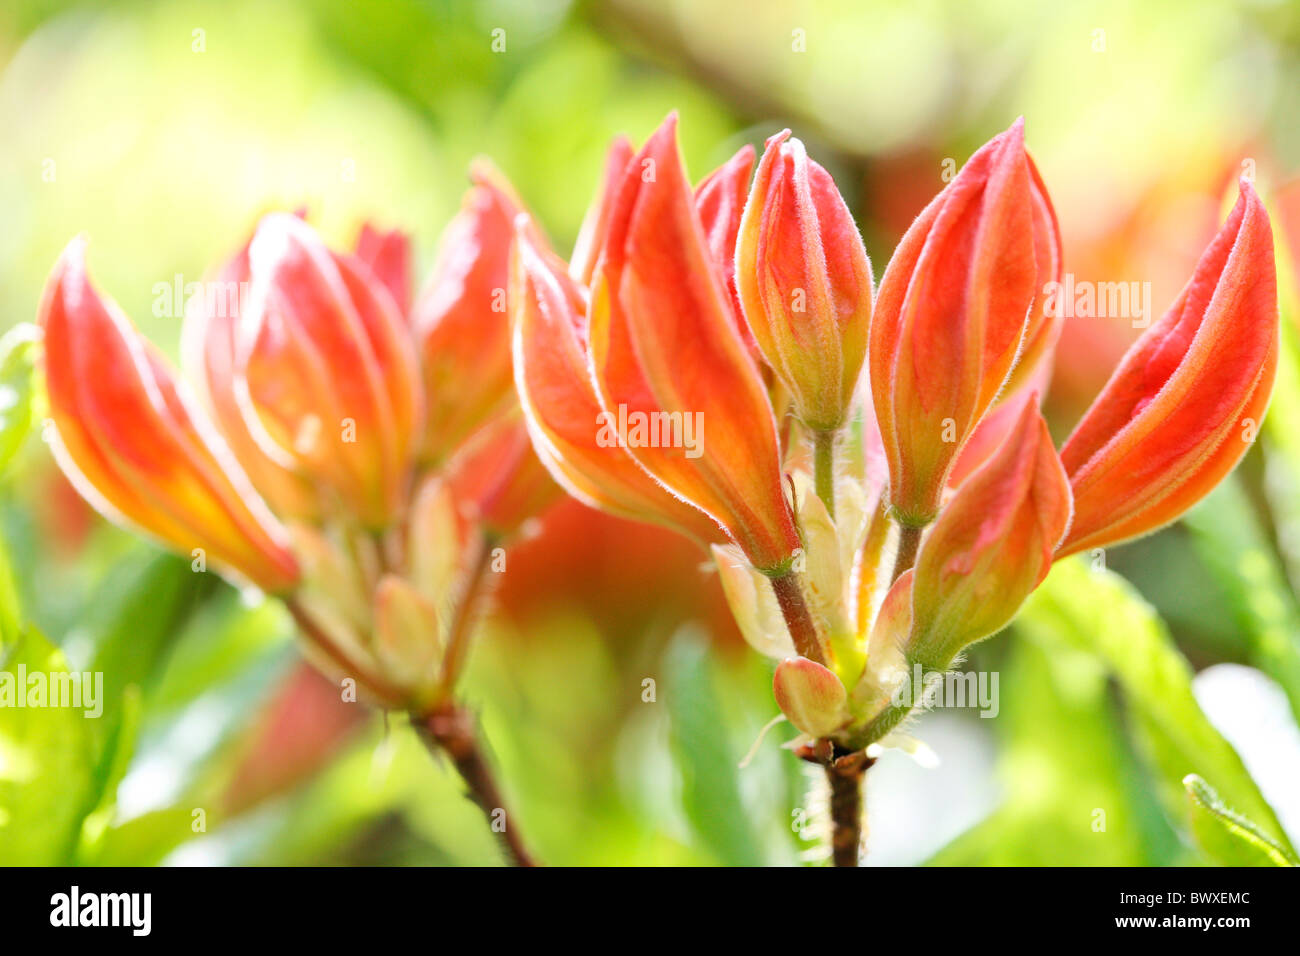 lovely orange azalea buds, harmony in nature  Jane-Ann Butler Photography JABP883 Stock Photo